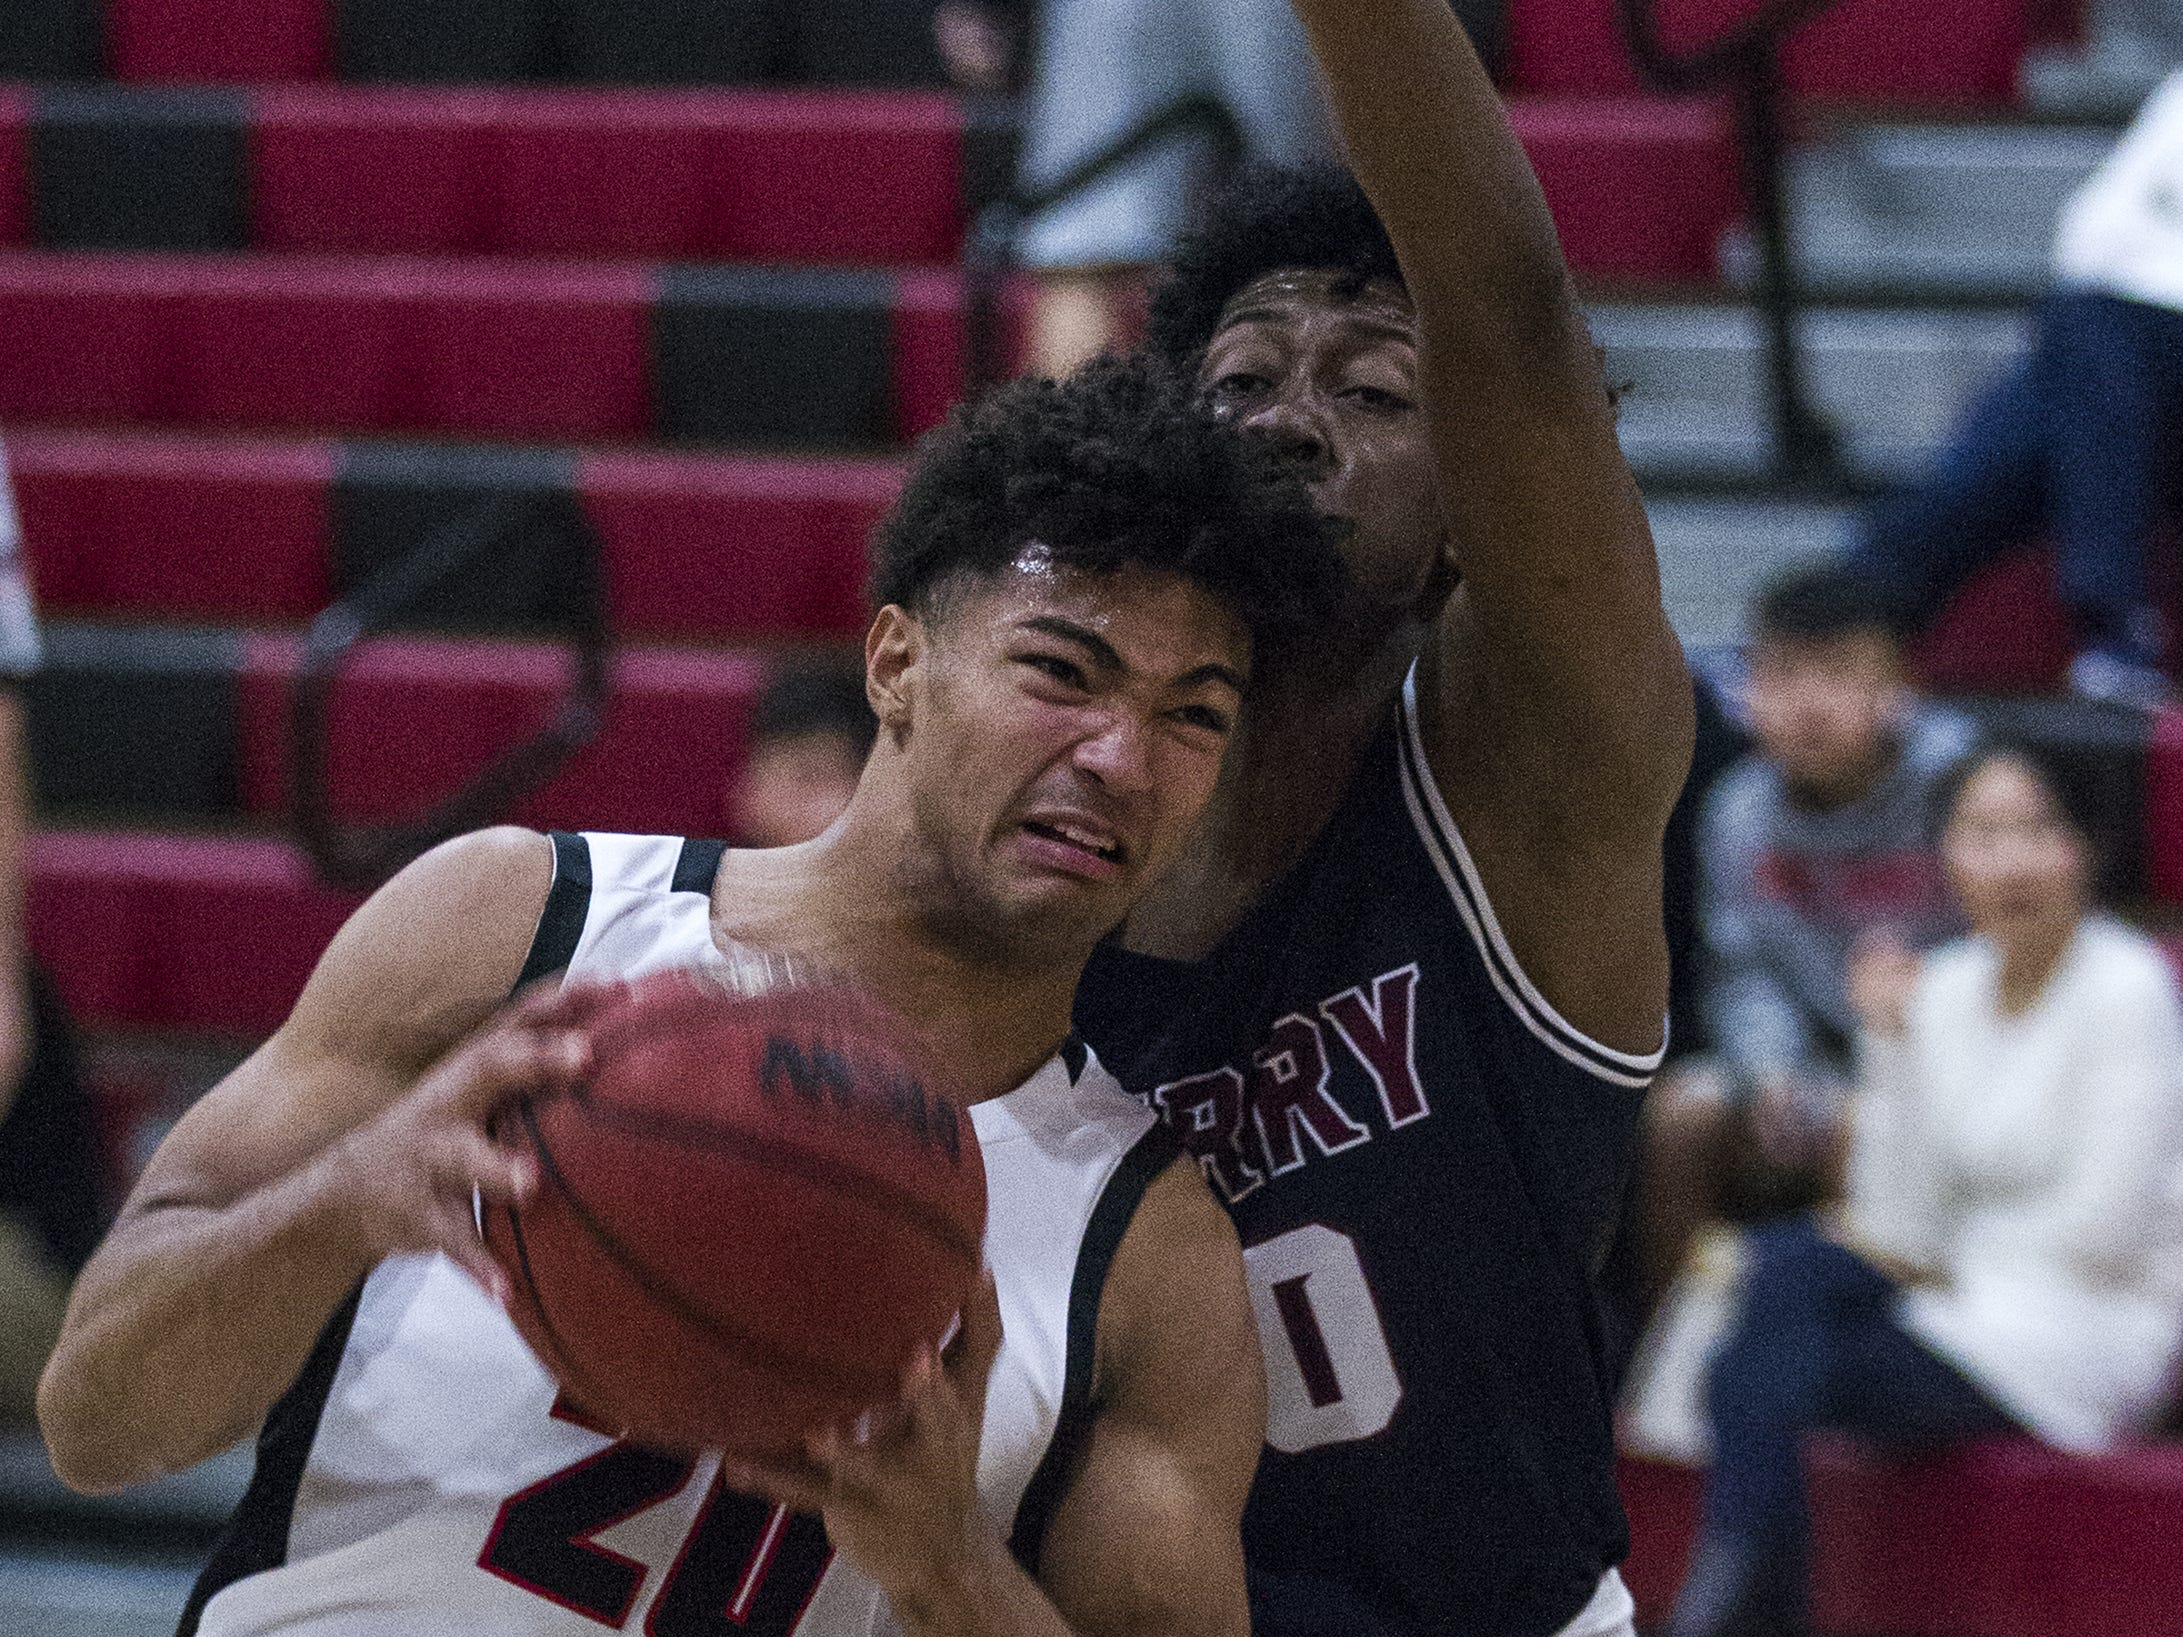 Brophy's Marques White gets body checked by Perry's Jalen Williams (10) during in the first half of their game at Brophy High School in Phoenix, Tuesday, Jan. 8, 2019.